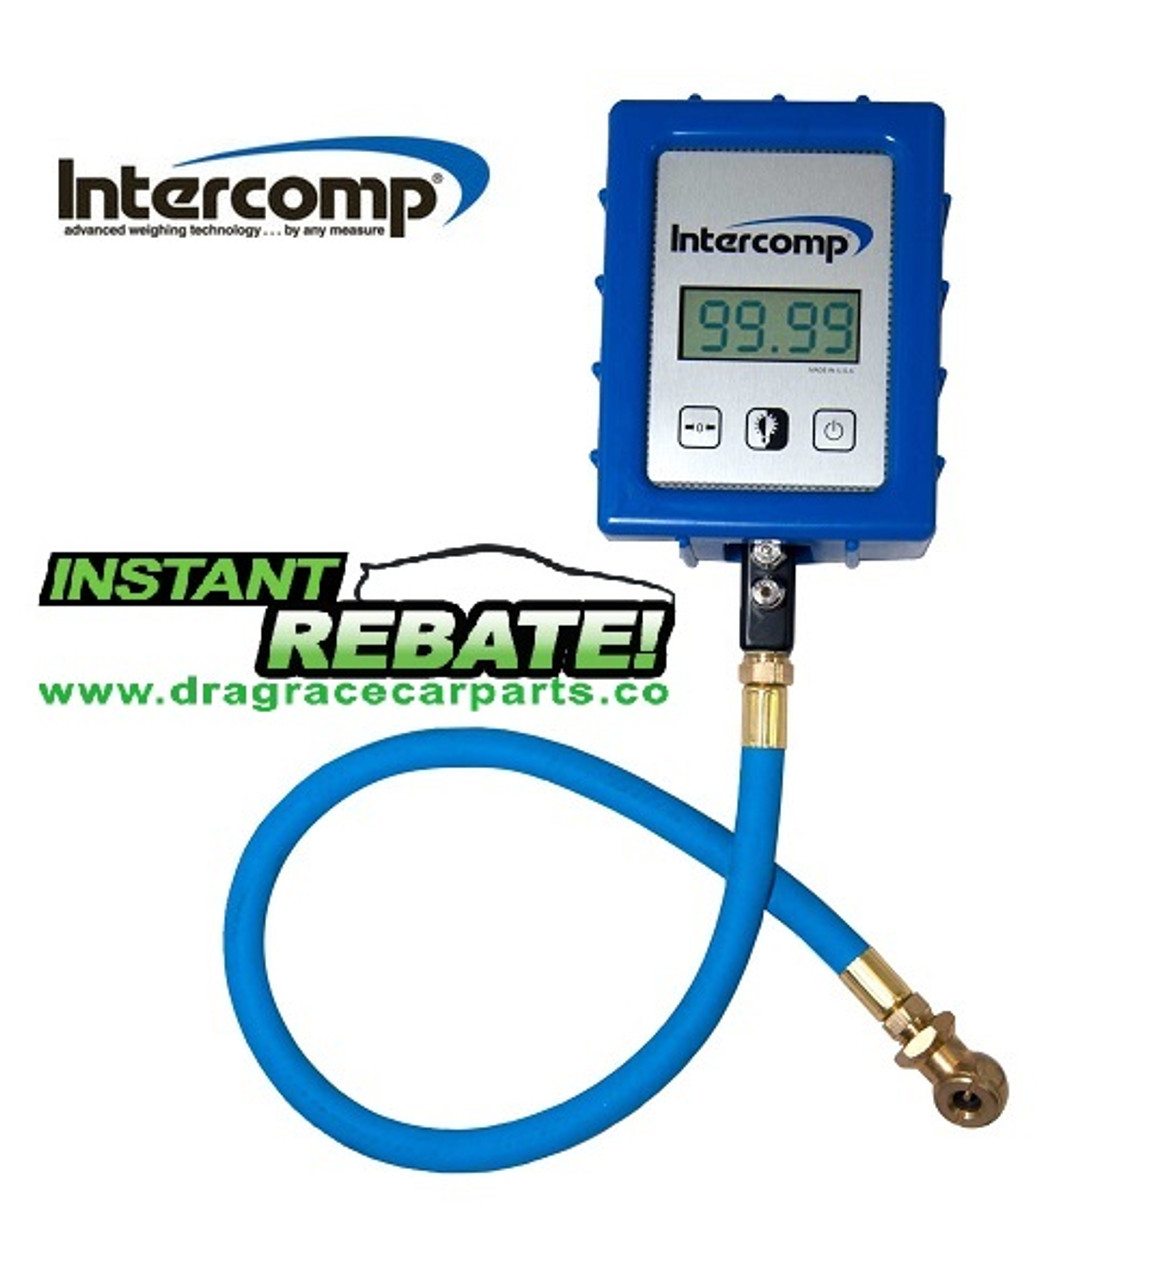 Intercomp Racing Digital Air Tire Pressure Gauge 0-99.99 psi, 45 Degree Chuck, Bleed Valve, 22.0 inch Hose, Case 360045 with FREE SHIPPING and INSTANT REBATE SAVINGS